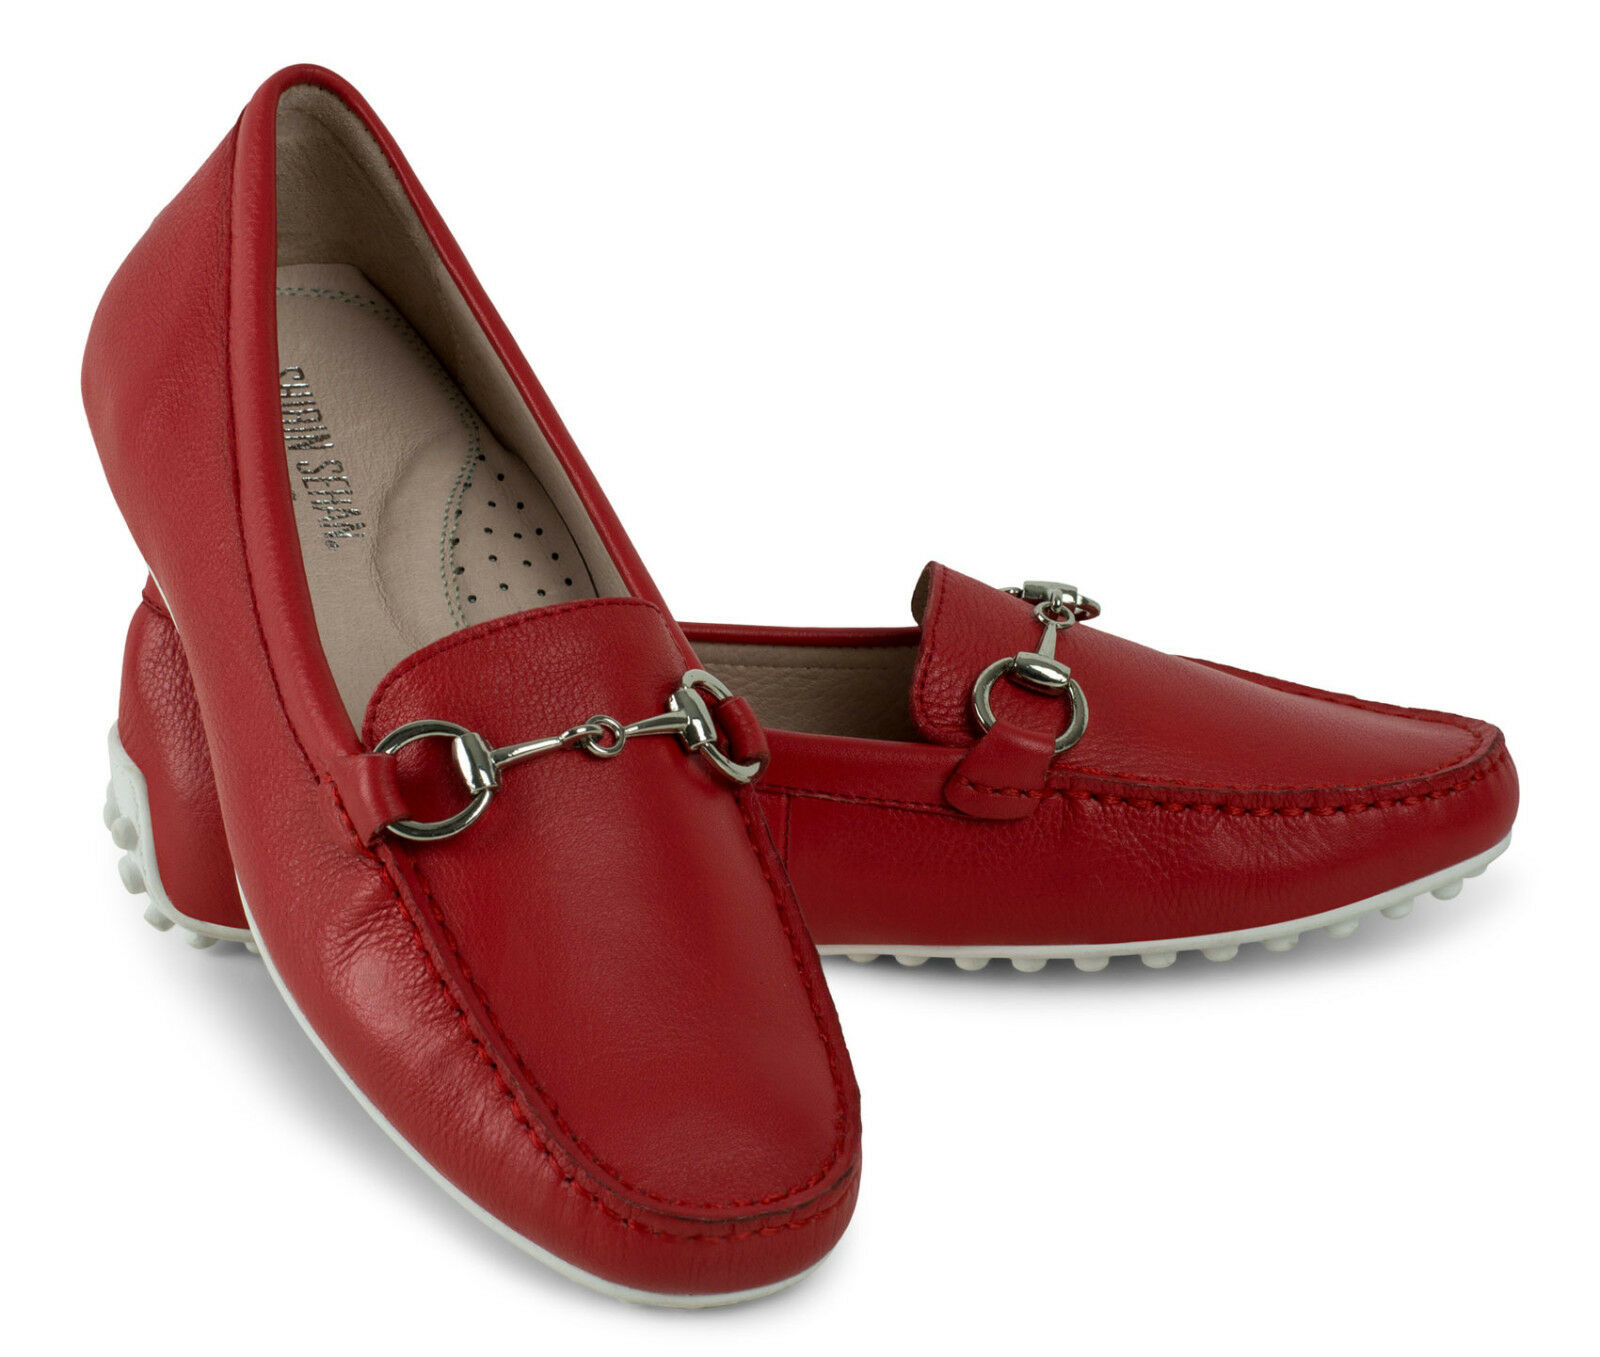 Mocasines loafer tachas suela de cuero rojo rojo Leather blanco Rubber Sole